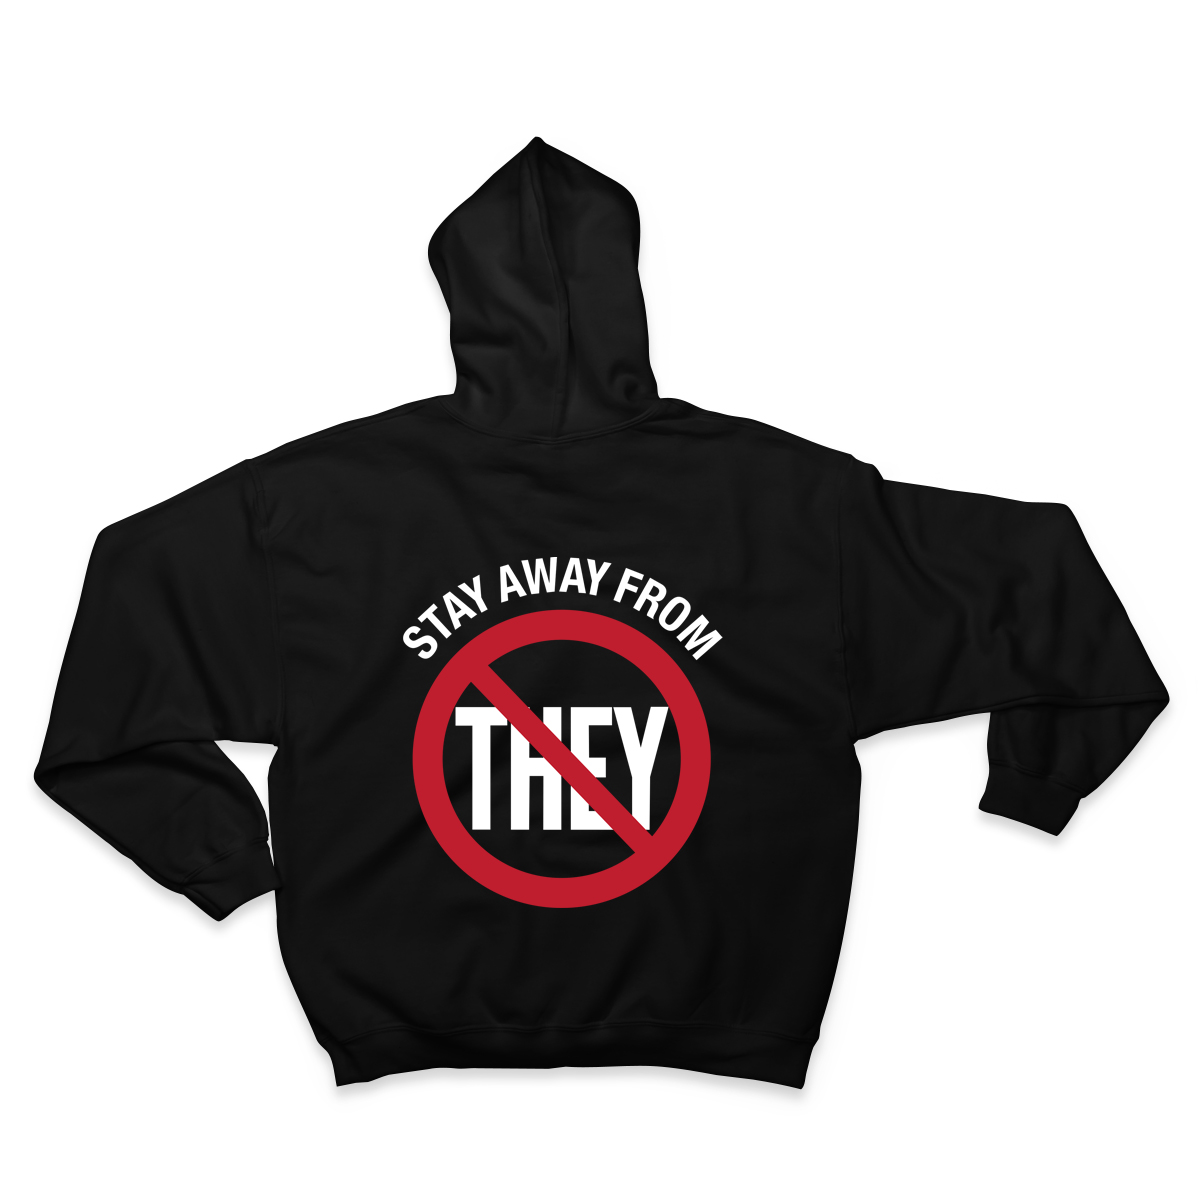 Stay Away From They Hoodie